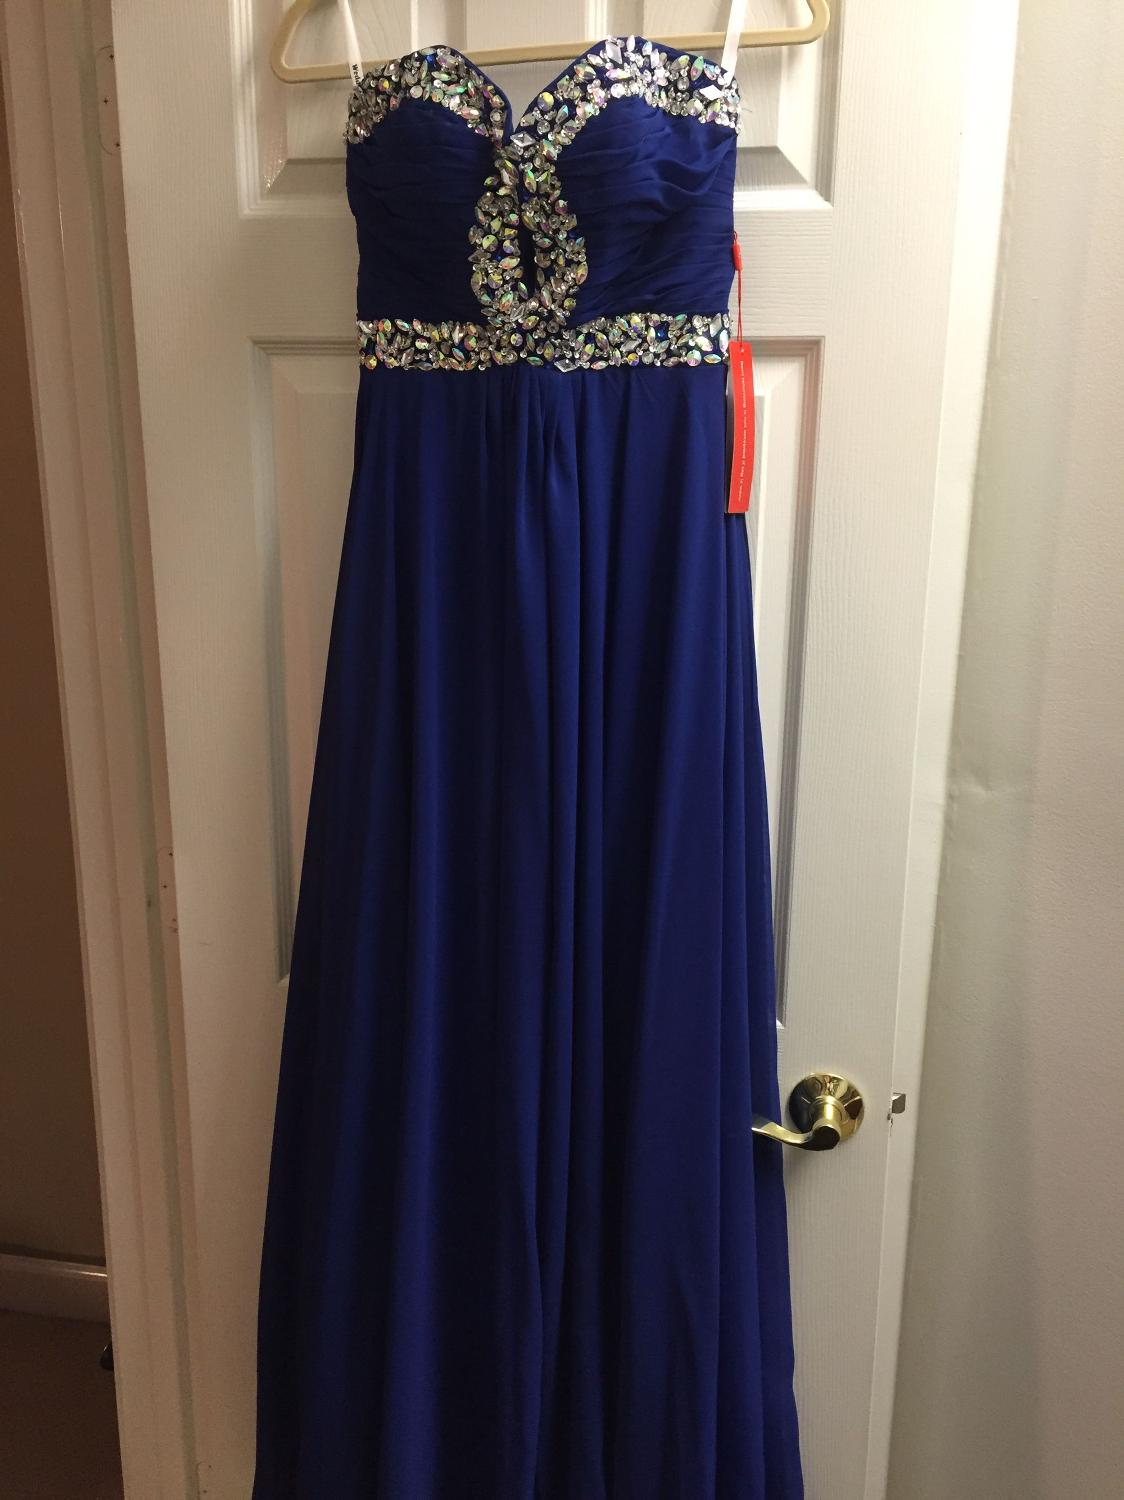 Sell Formal Dress Near Me Lixnet Ag